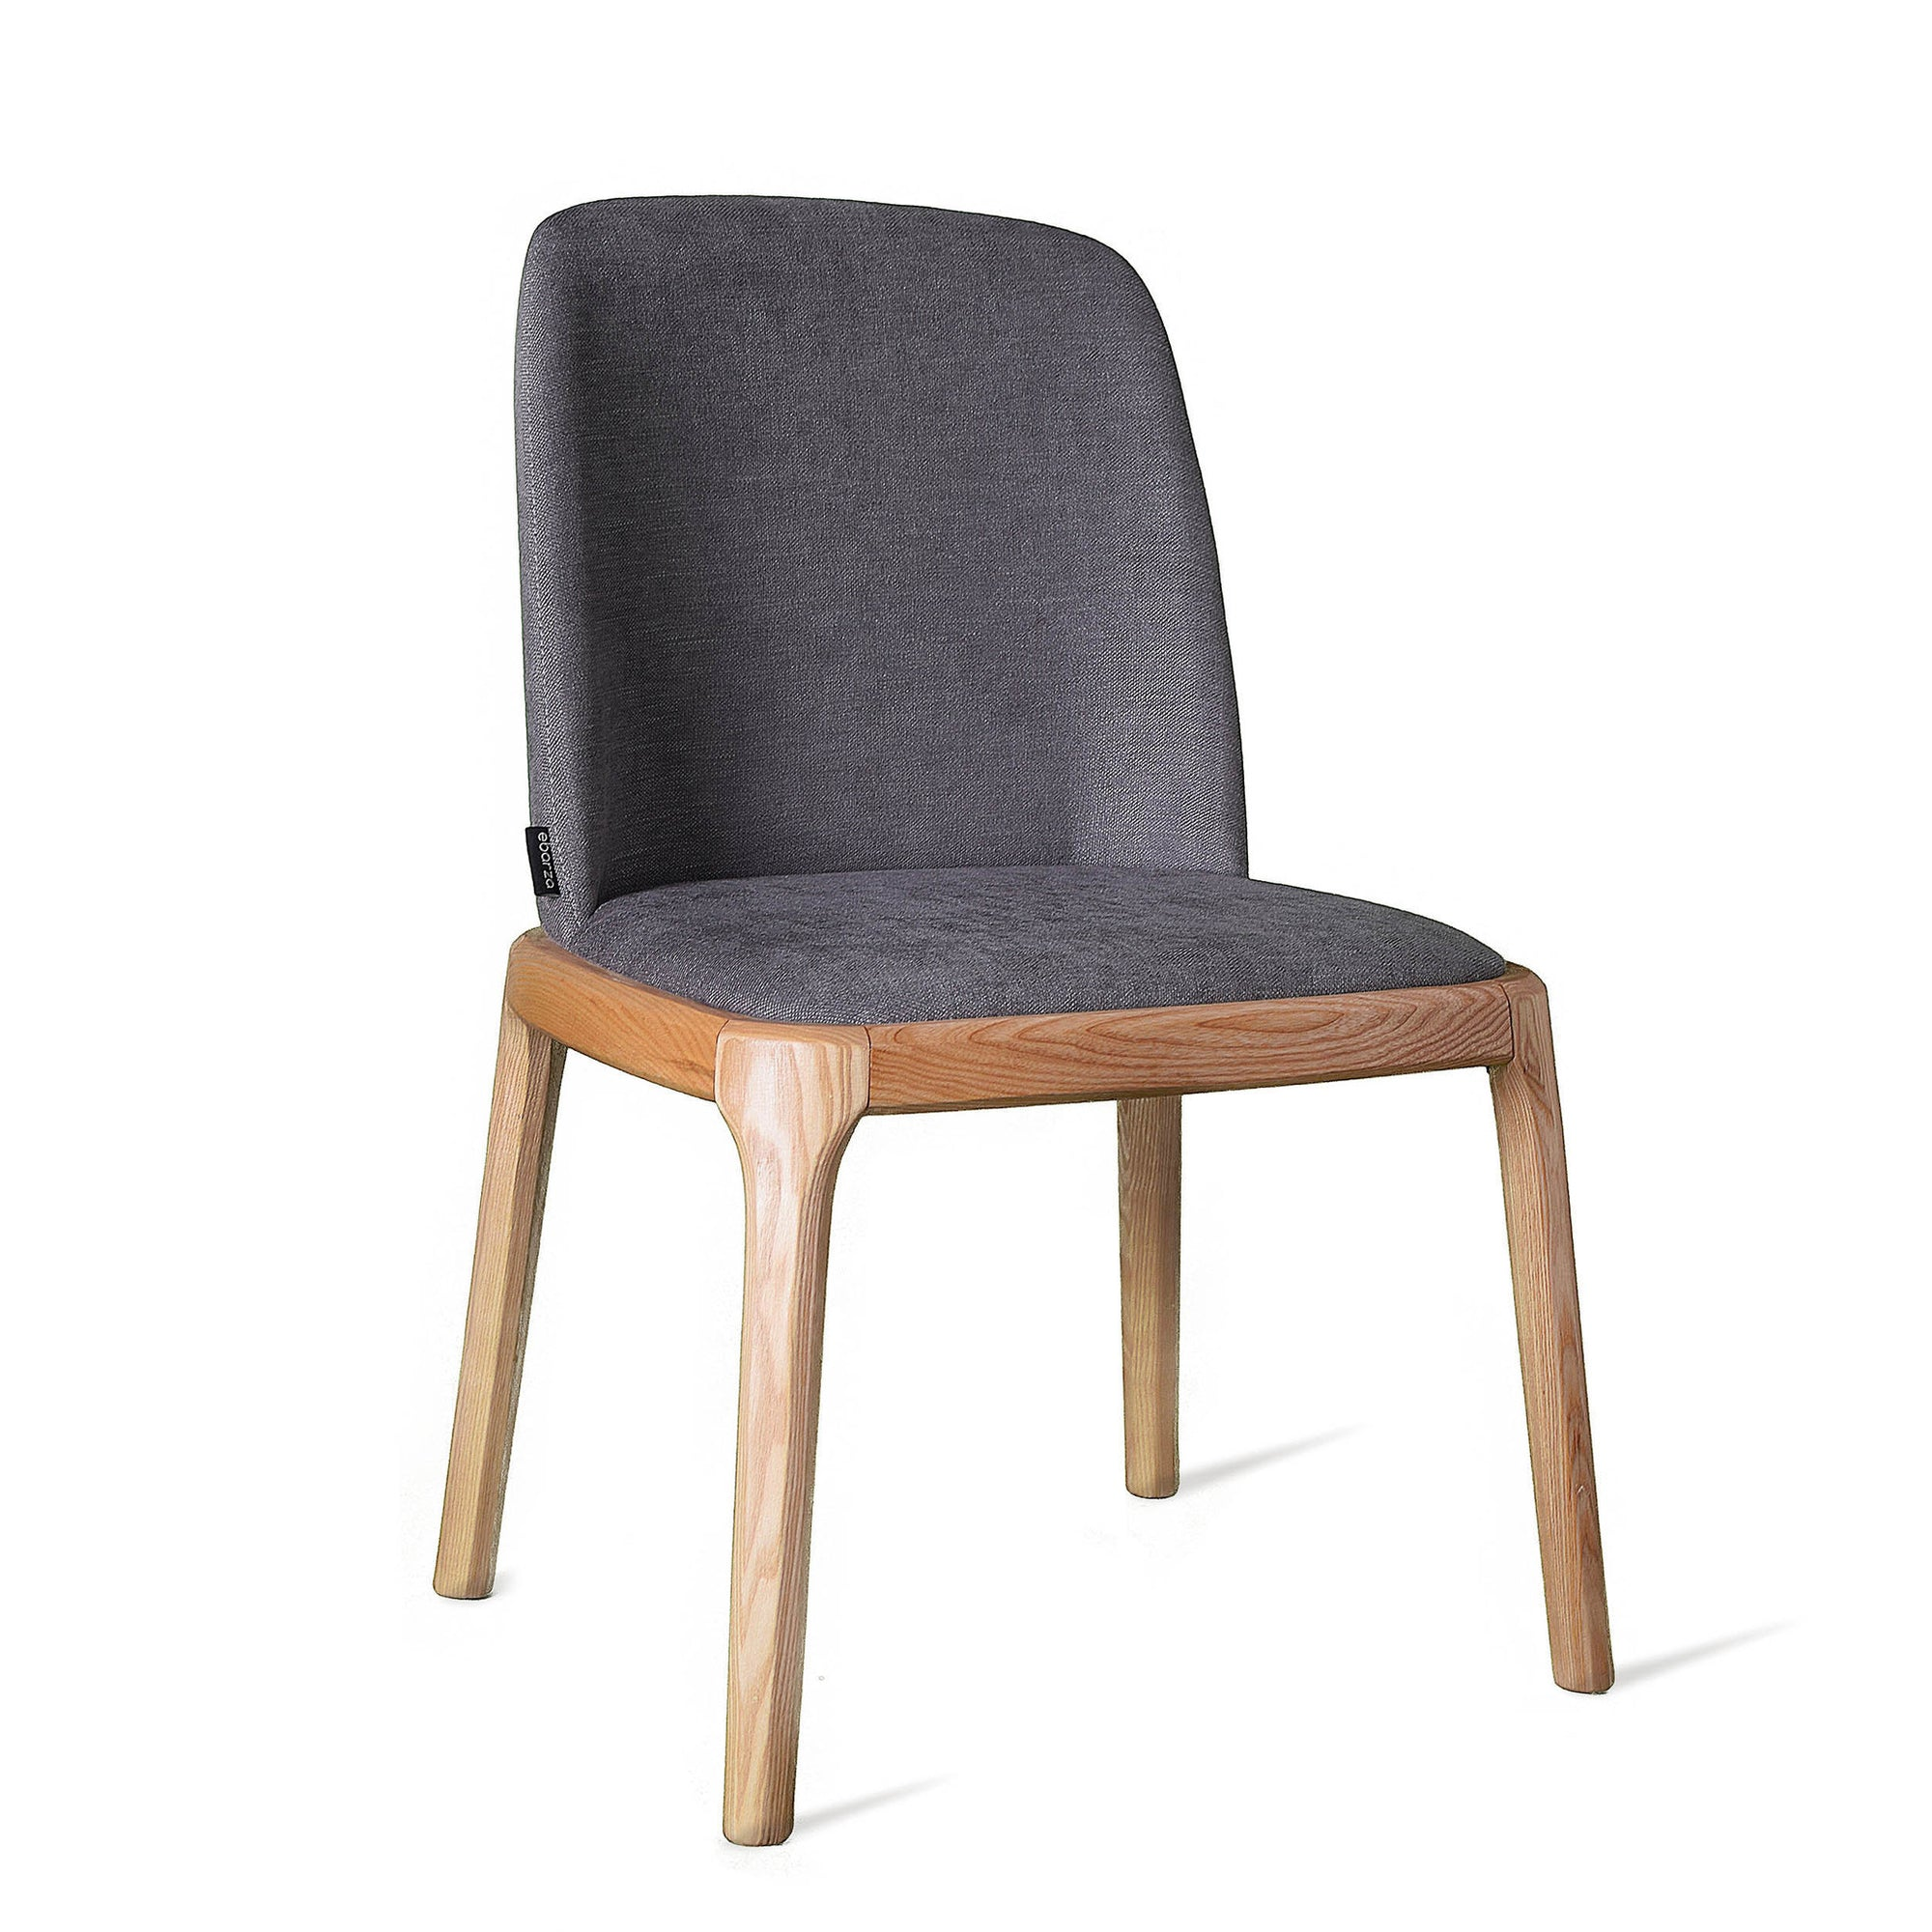 Dining Chair Solid Ash wood  GRA-NA-N -  كرسي طعام خشب رمادي صلب - Shop Online Furniture and Home Decor Store in Dubai, UAE at ebarza